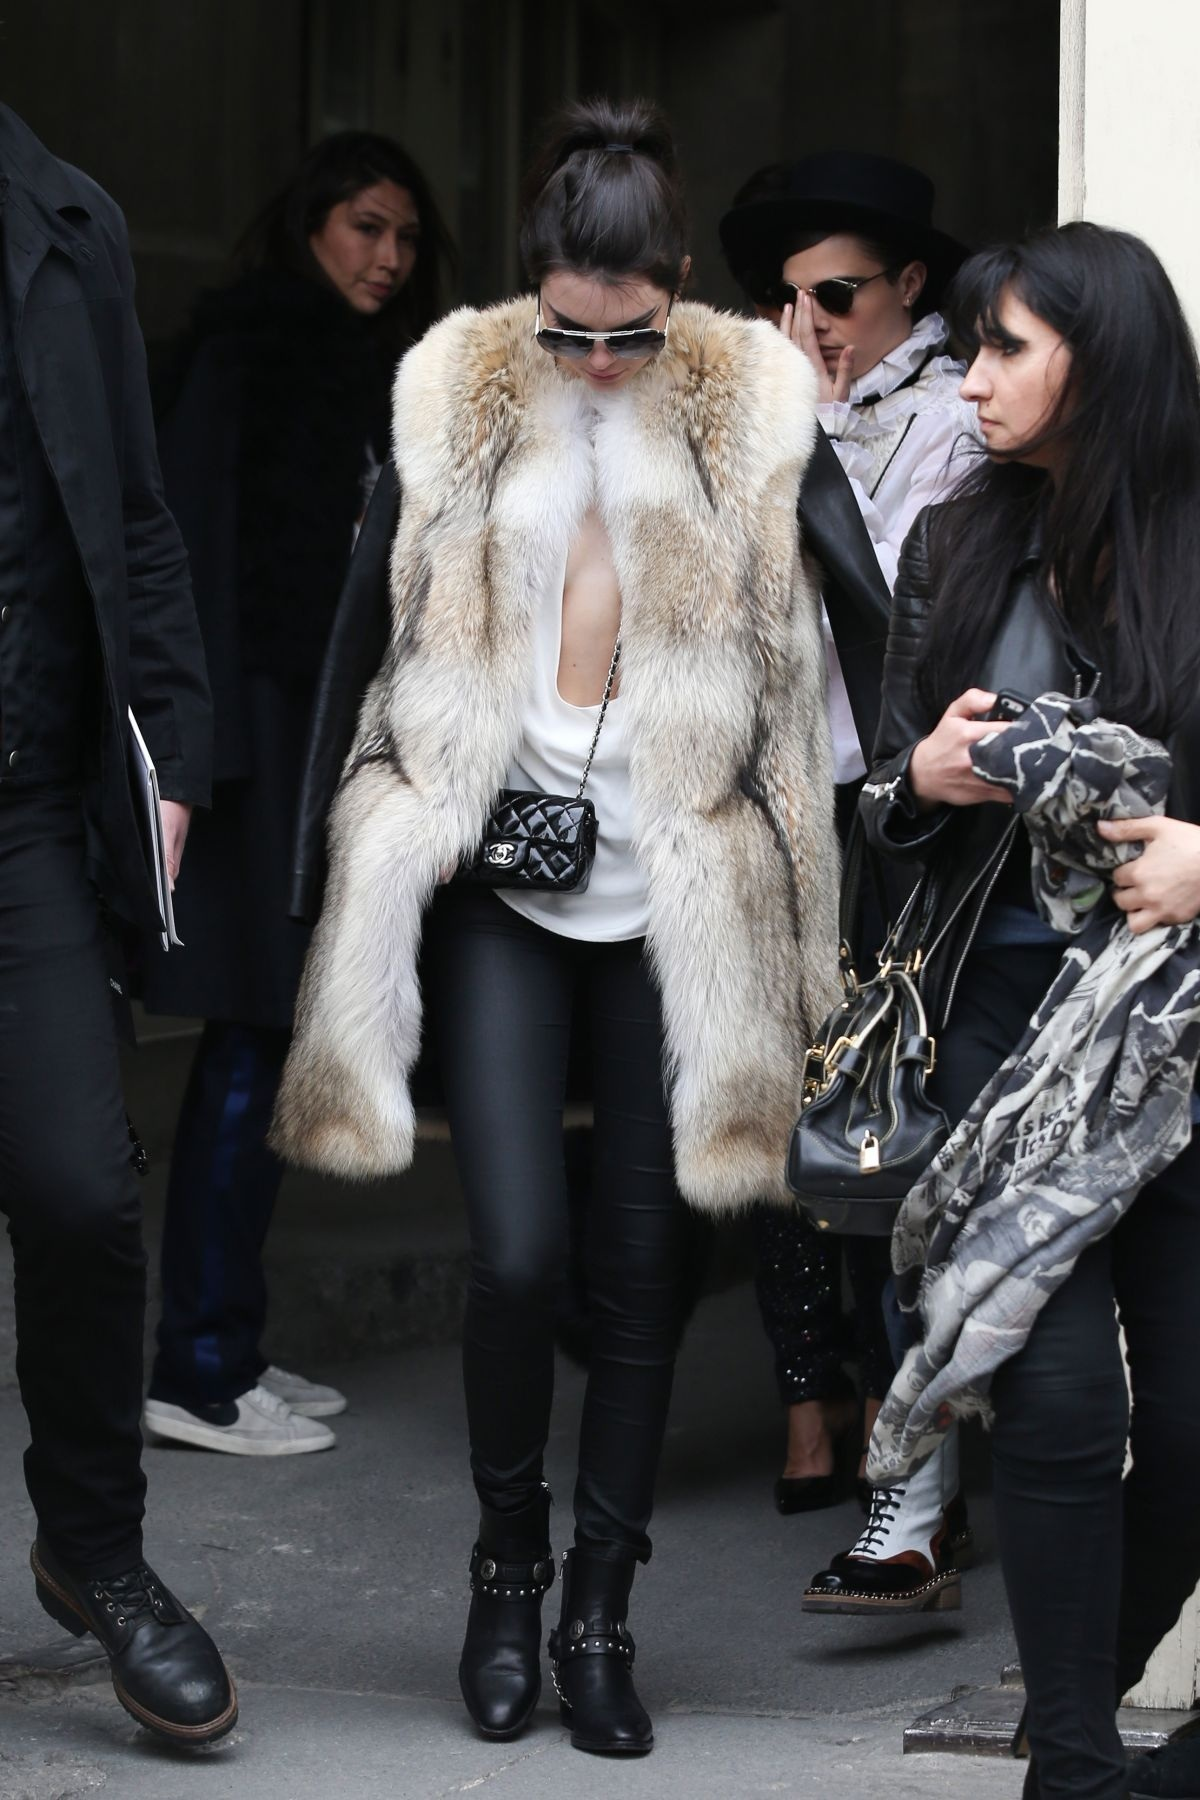 Kendall Jenner And Cara Delevingne Leaving Chanel Show In Paris